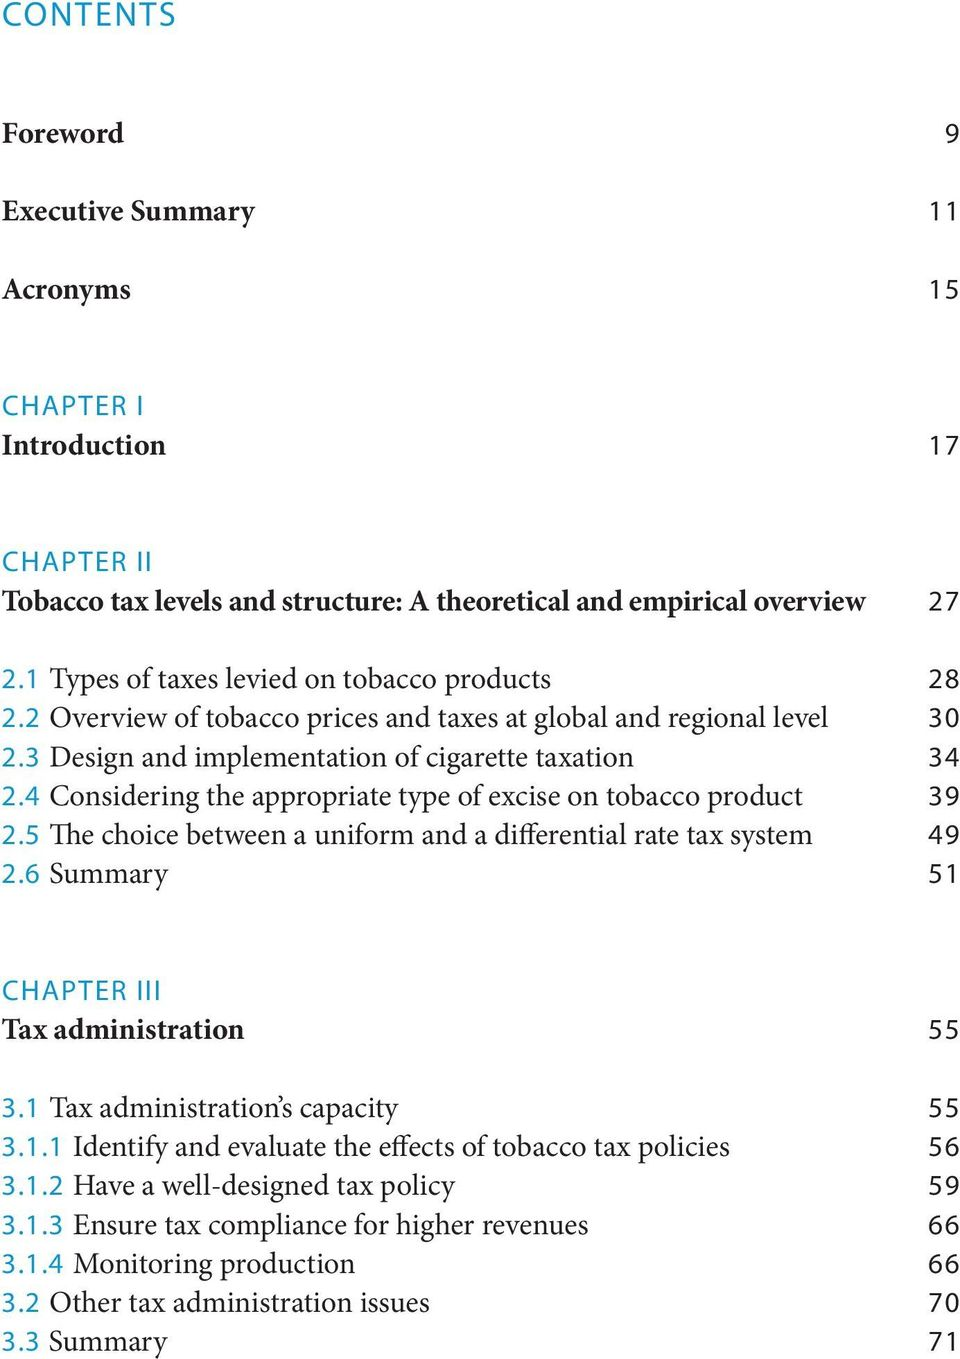 4 Considering the appropriate type of excise on tobacco product 2.5 The choice between a uniform and a differential rate tax system 2.6 Summary 27 28 30 34 39 49 51 Chapter III Tax administration 3.